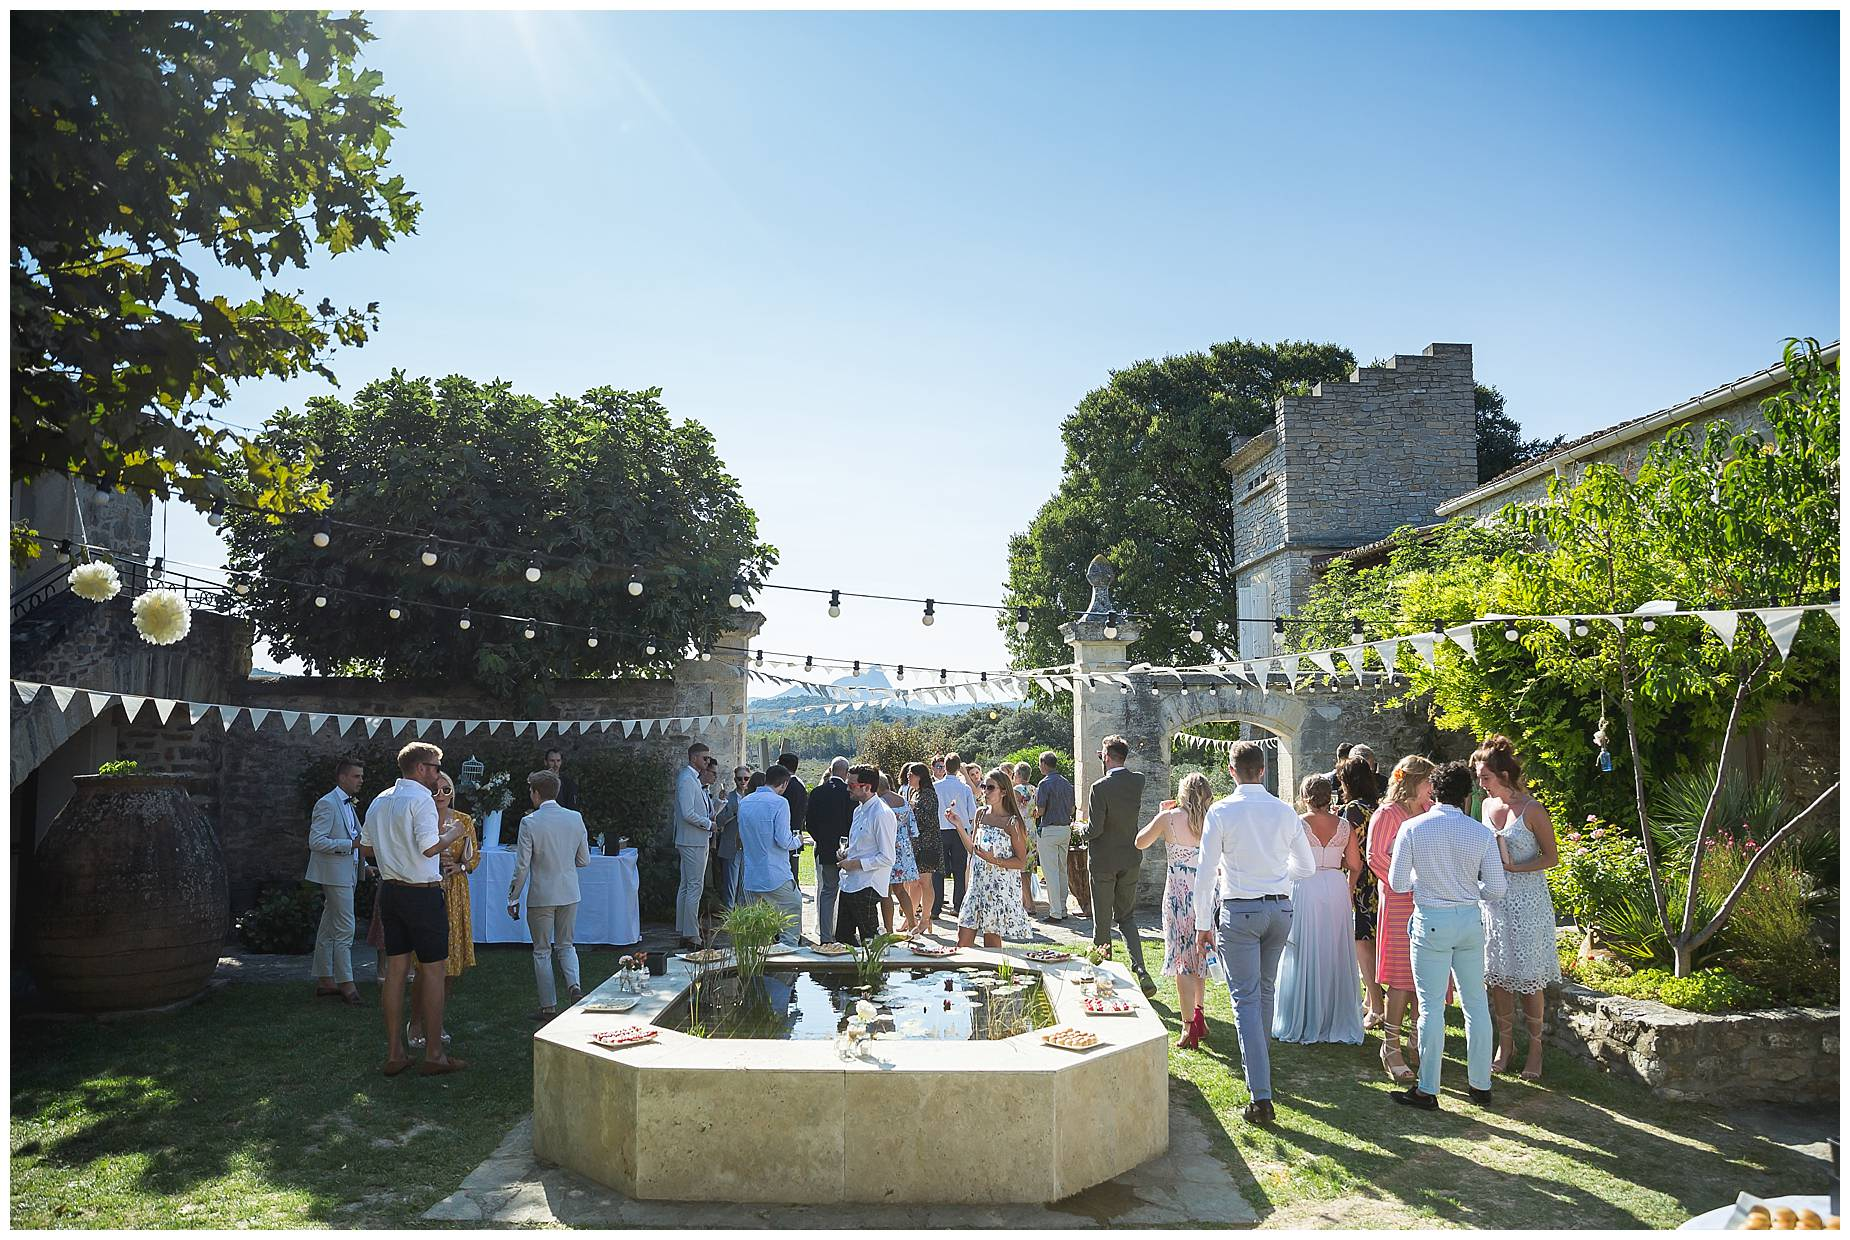 All the guests in the courtyard of Domaine Saint Germain